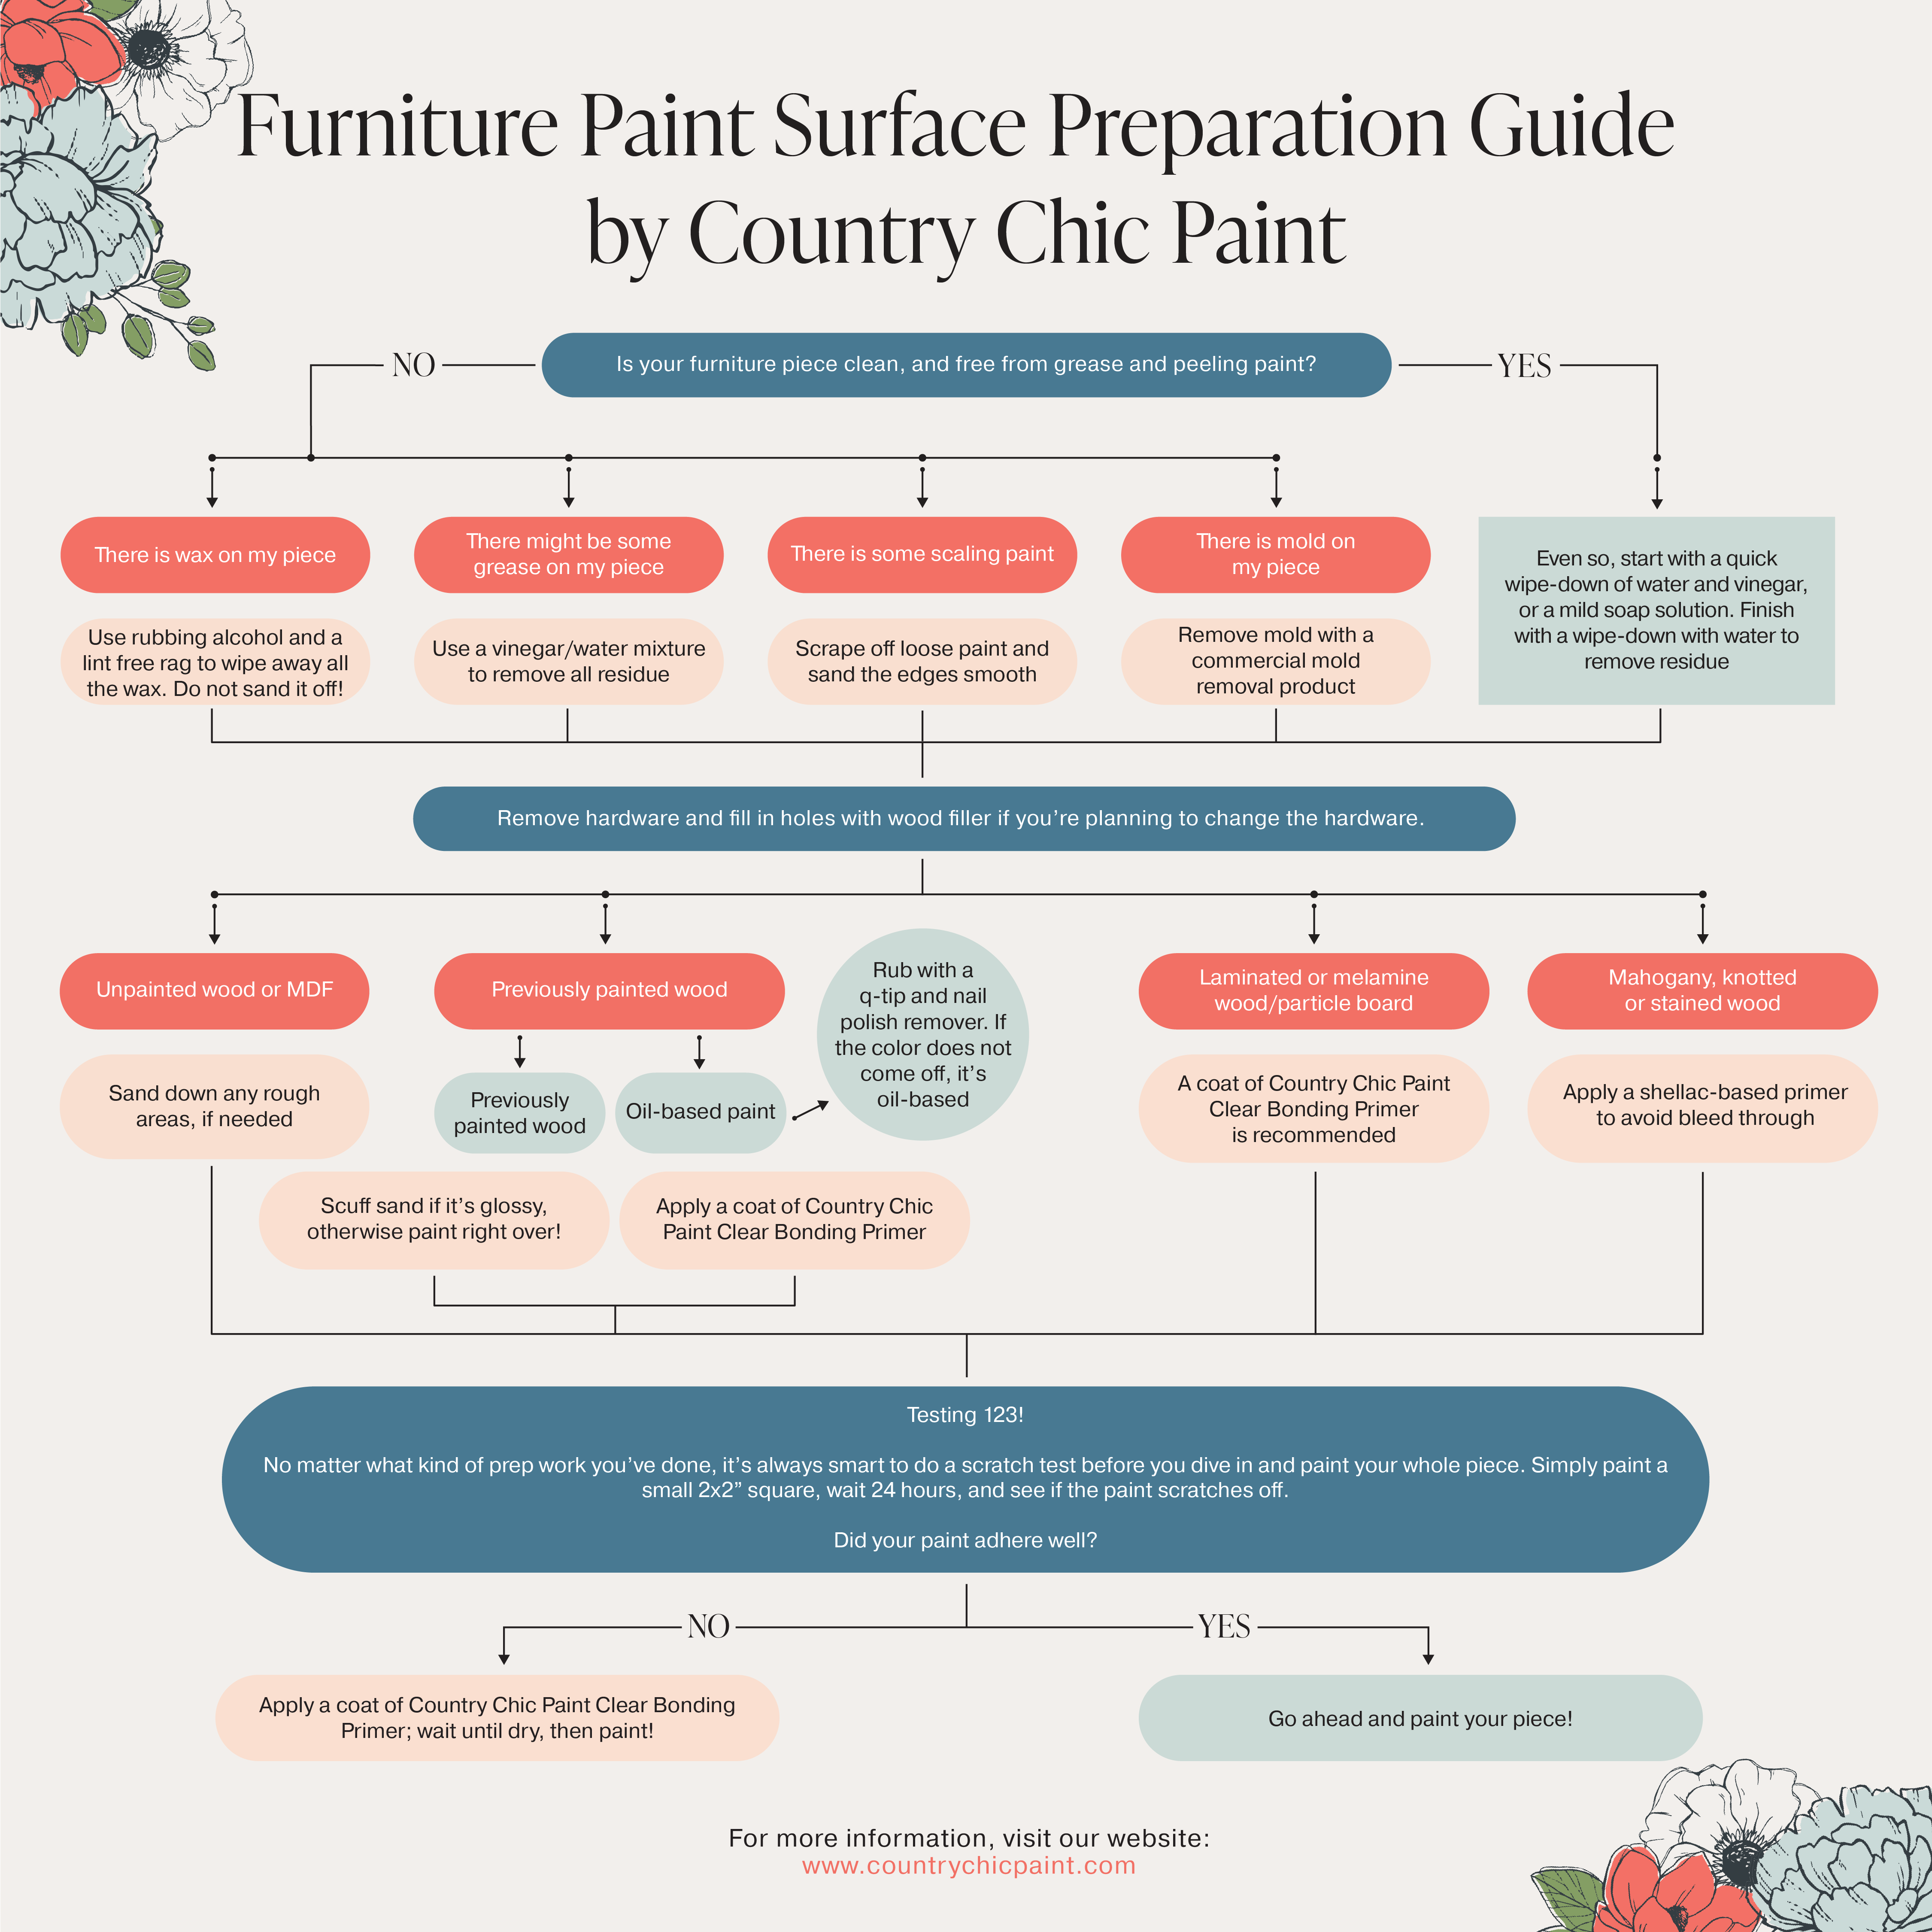 Furniture painting Surface Prep Flow Chart - how to prep furniture before painting